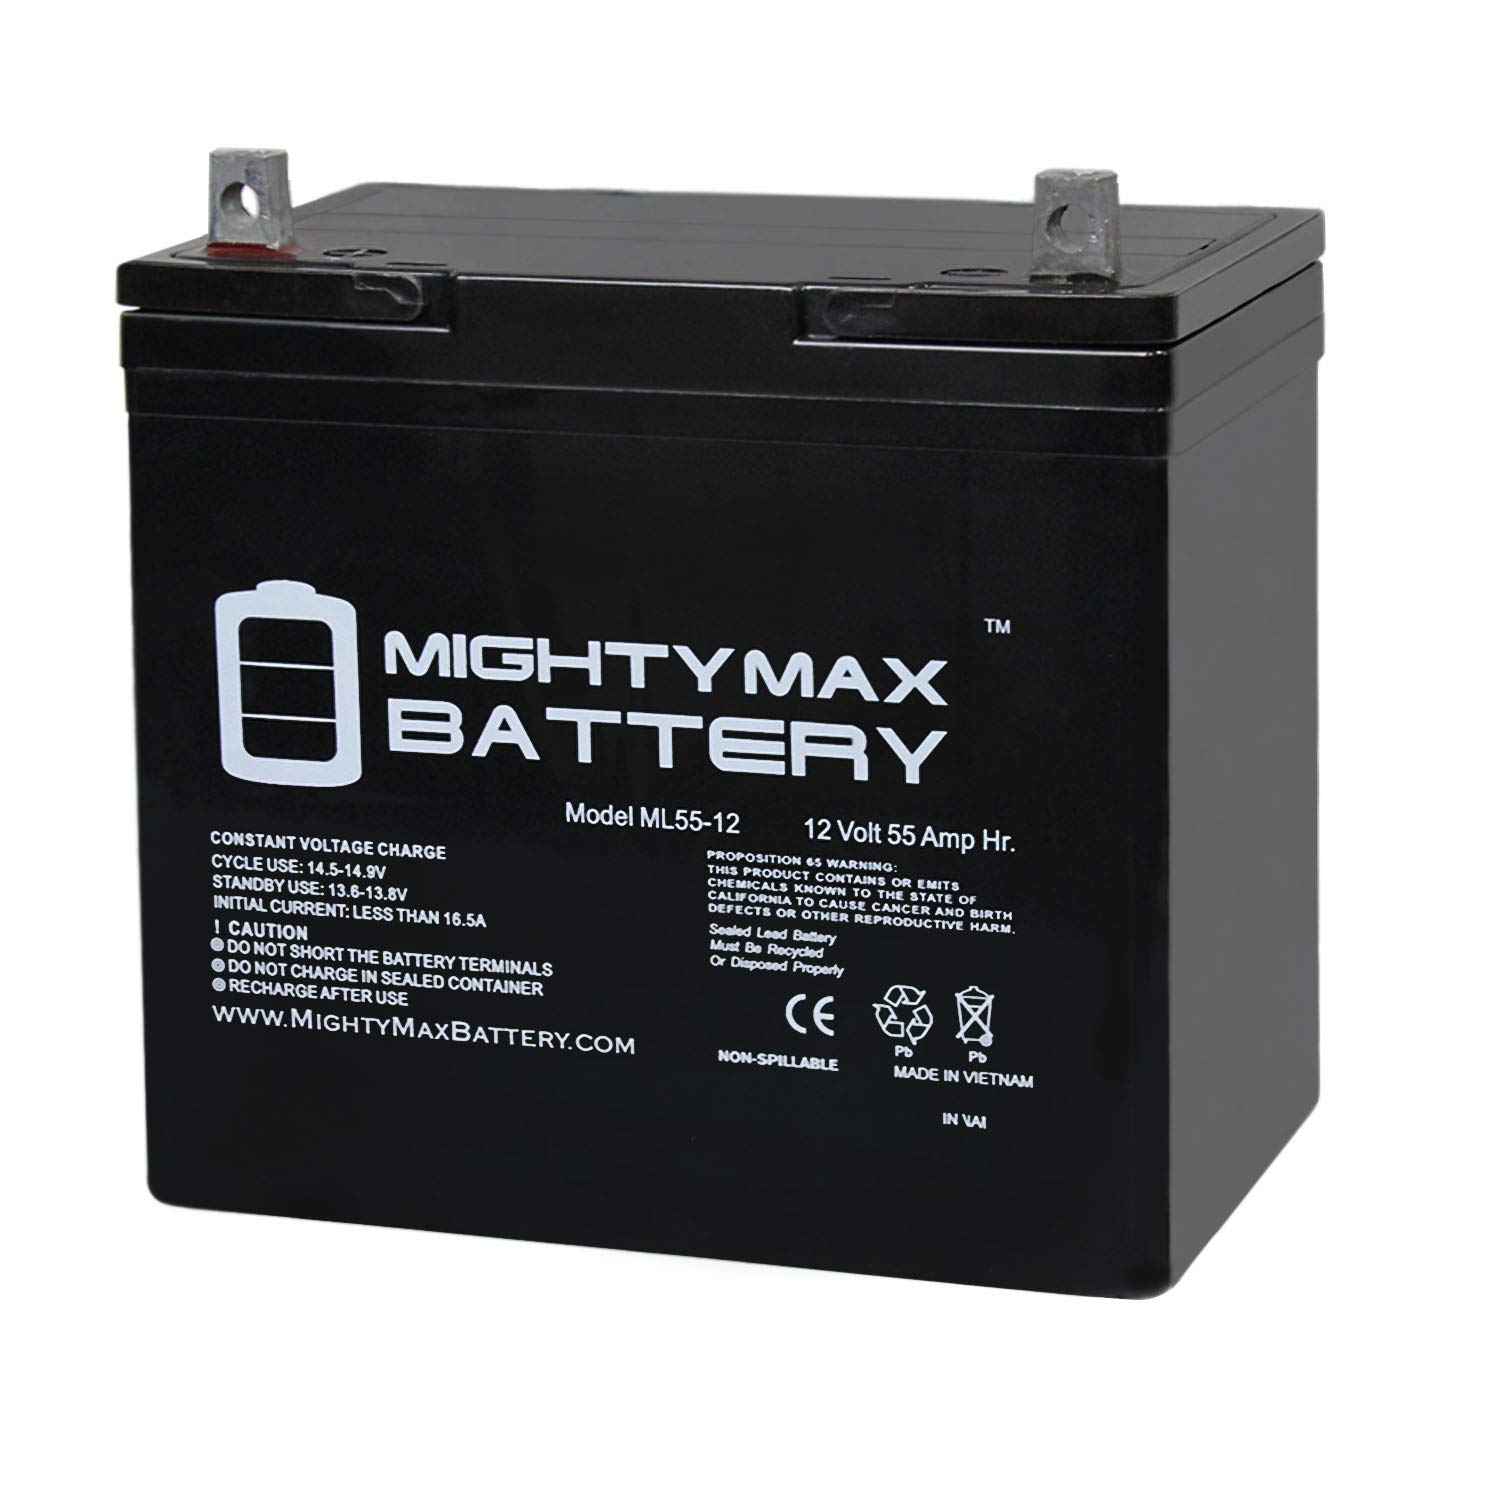 Mighty Max Battery 12V 55Ah Power Boat Pontoon Electric Trolling Motor Deep Cycle Battery Brand Product by Mighty Max Battery